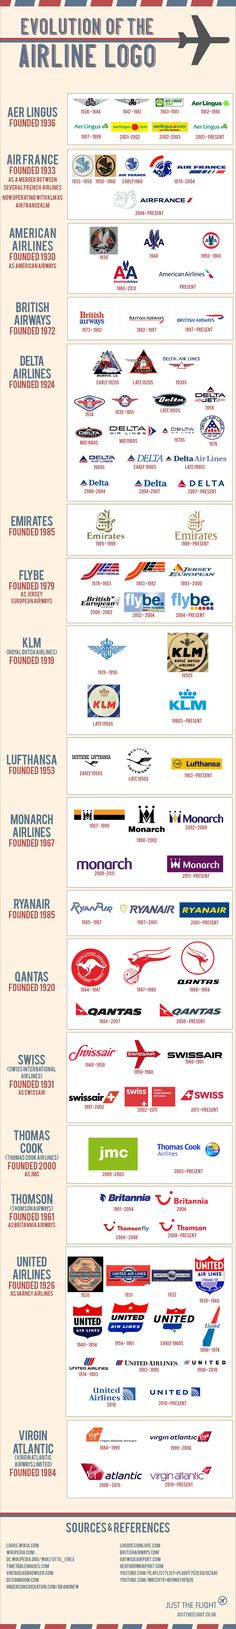 Evolution of the airline logo (Although I can't vouch for the timelines...I've already noticed that Lufthansa is incorrect. A version of it did exist prior to WW2, all the way back to the late 1920s, but it was reorganized...as were most German companies). Either way it's an interesting poster